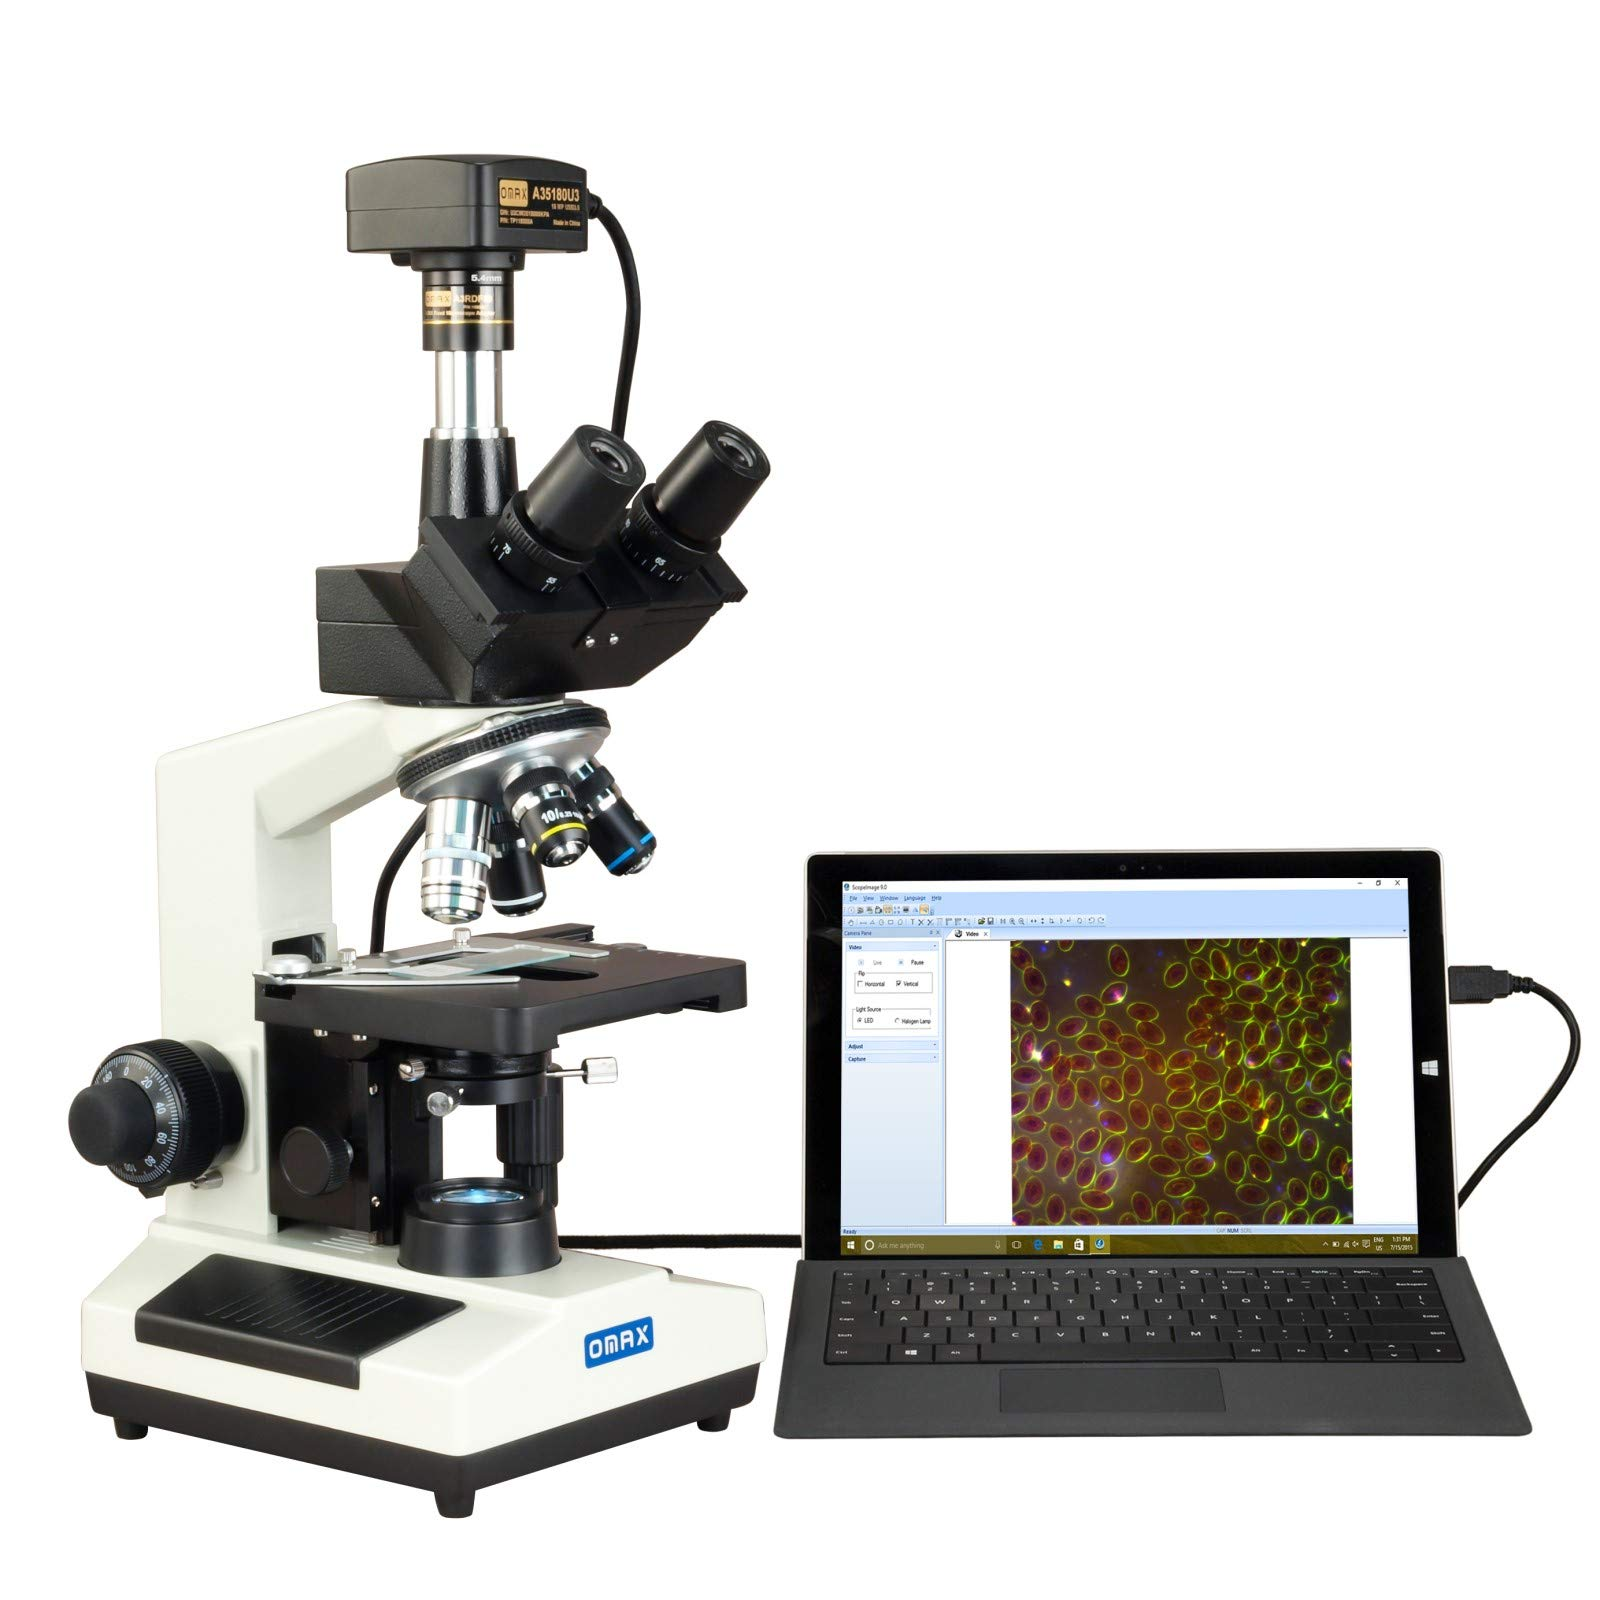 OMAX 40X-2500X Super Speed USB3 18MP Digital Darkfield Trinocular LED Lab Microscope for Live Blood by OMAX